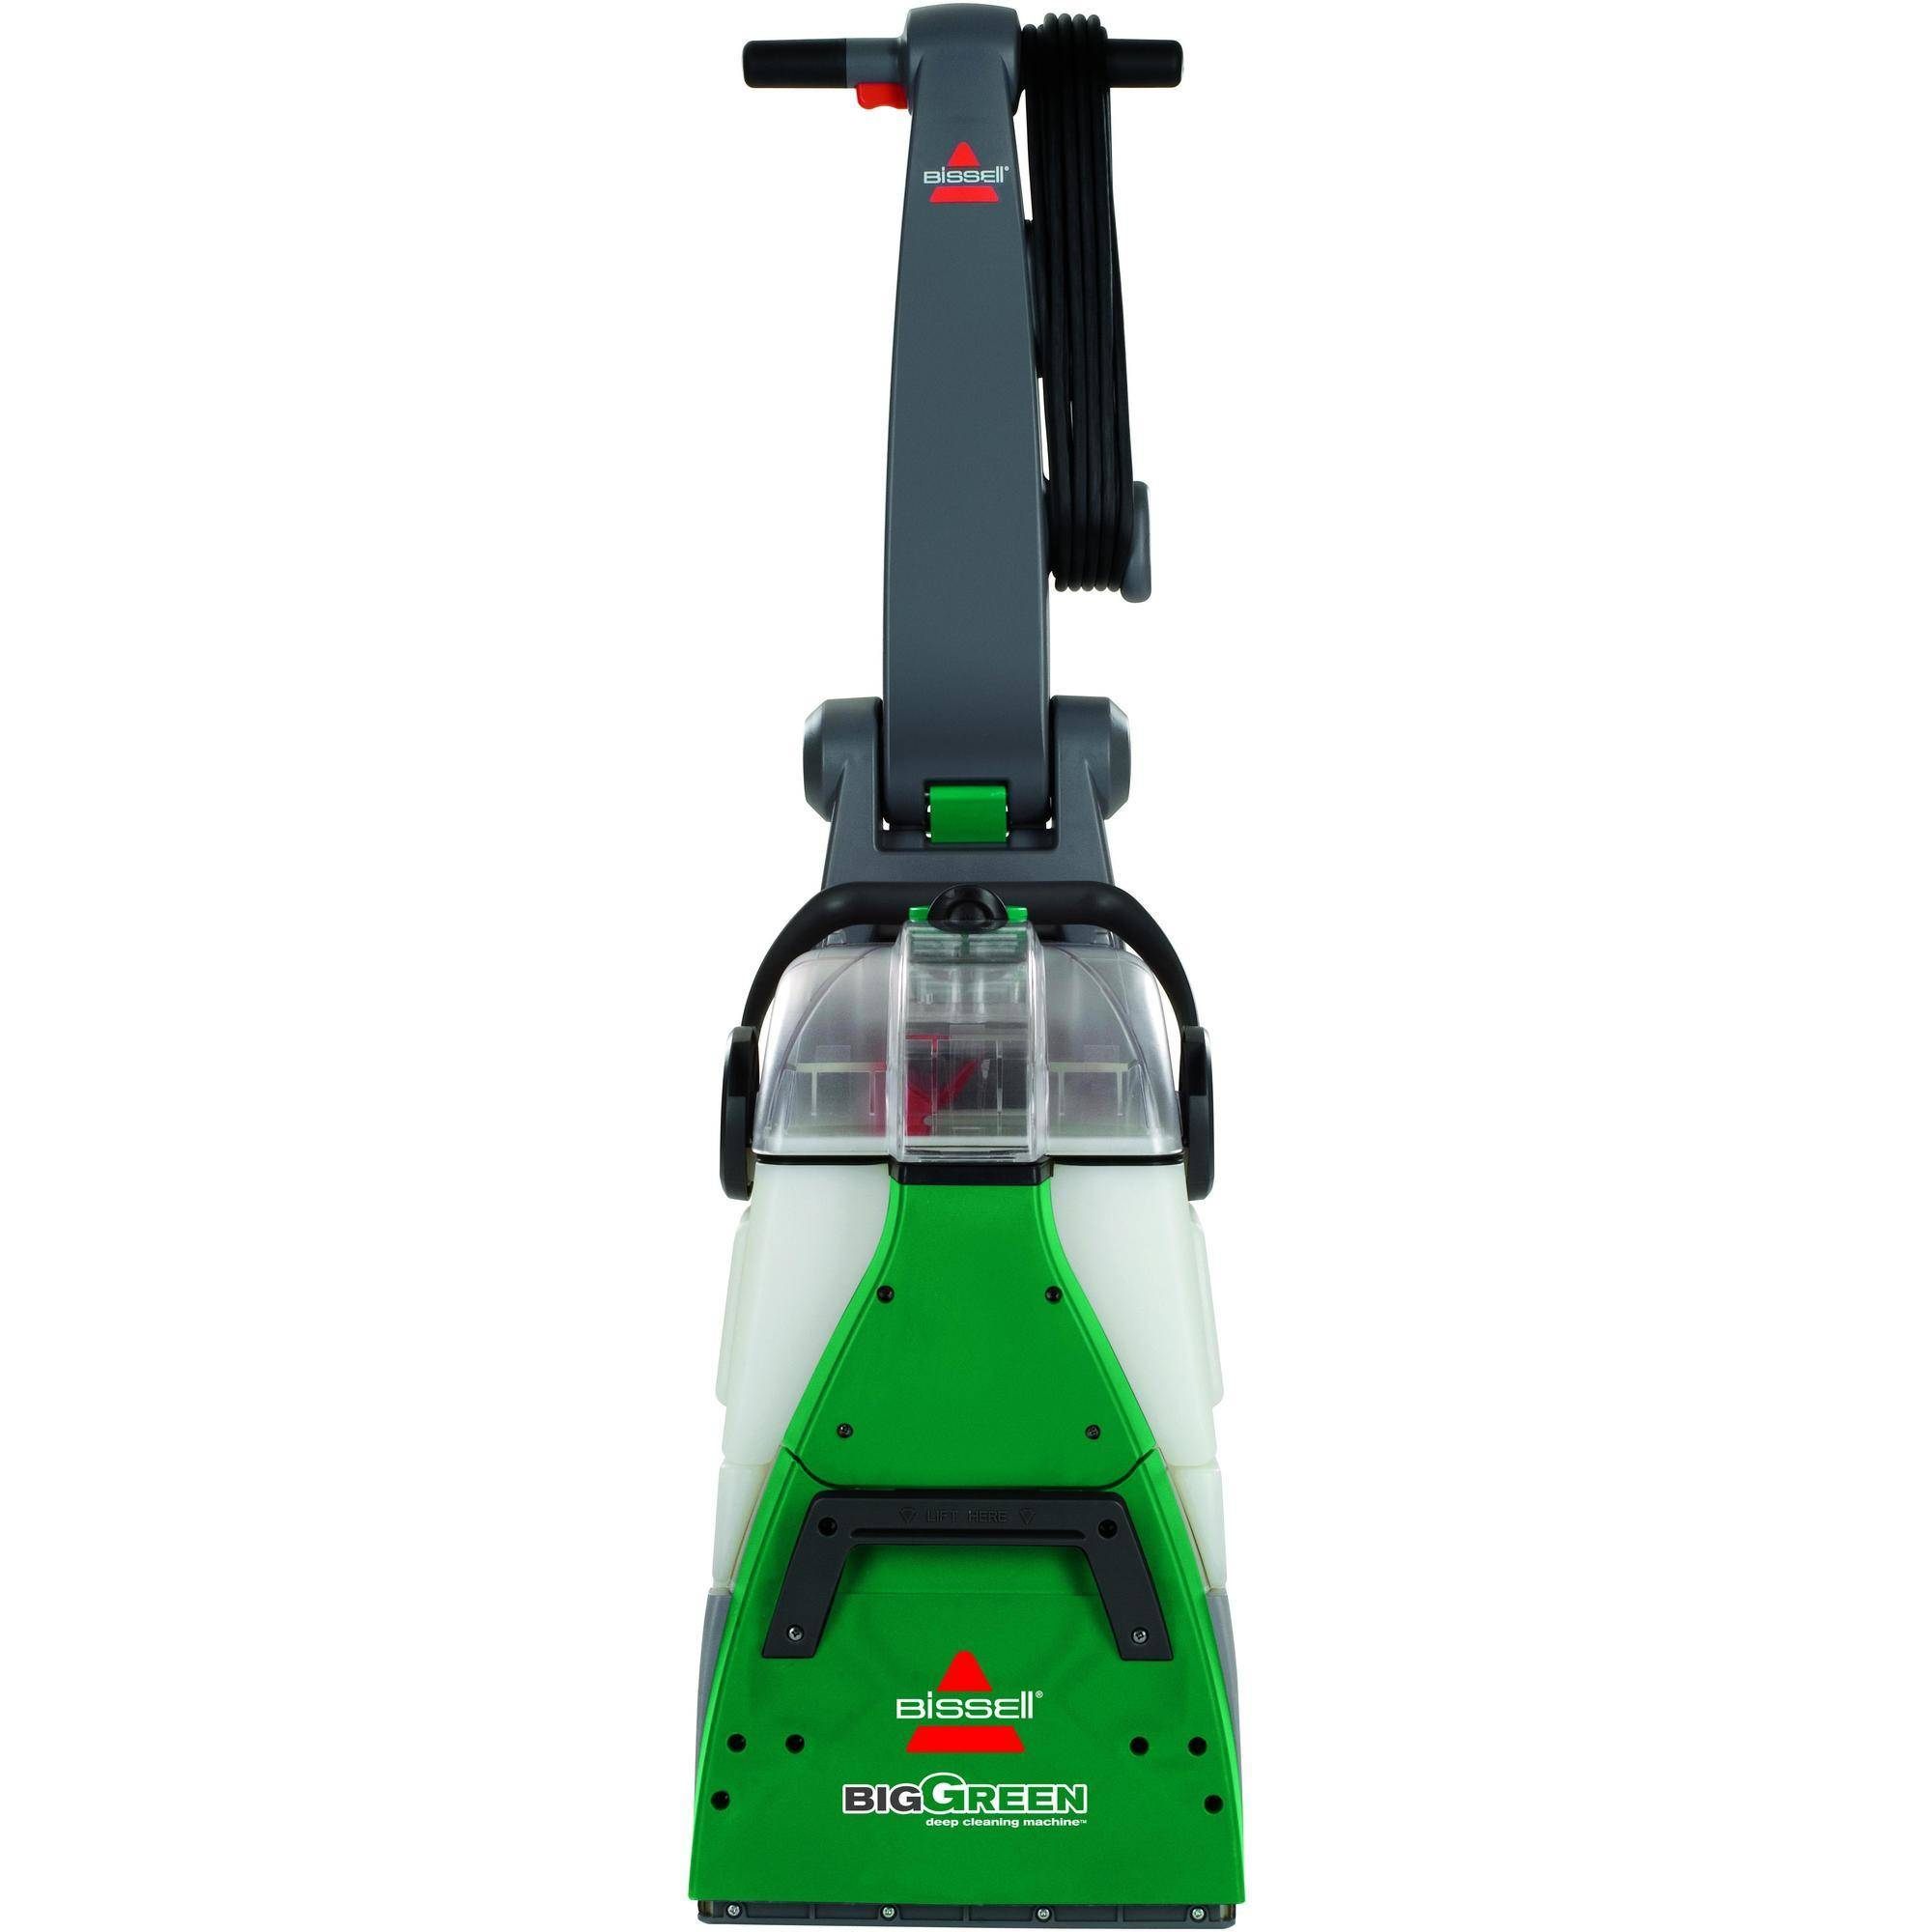 Bissell Big Green Deep Cleaning Machine Carpet Cleaner, 86T3